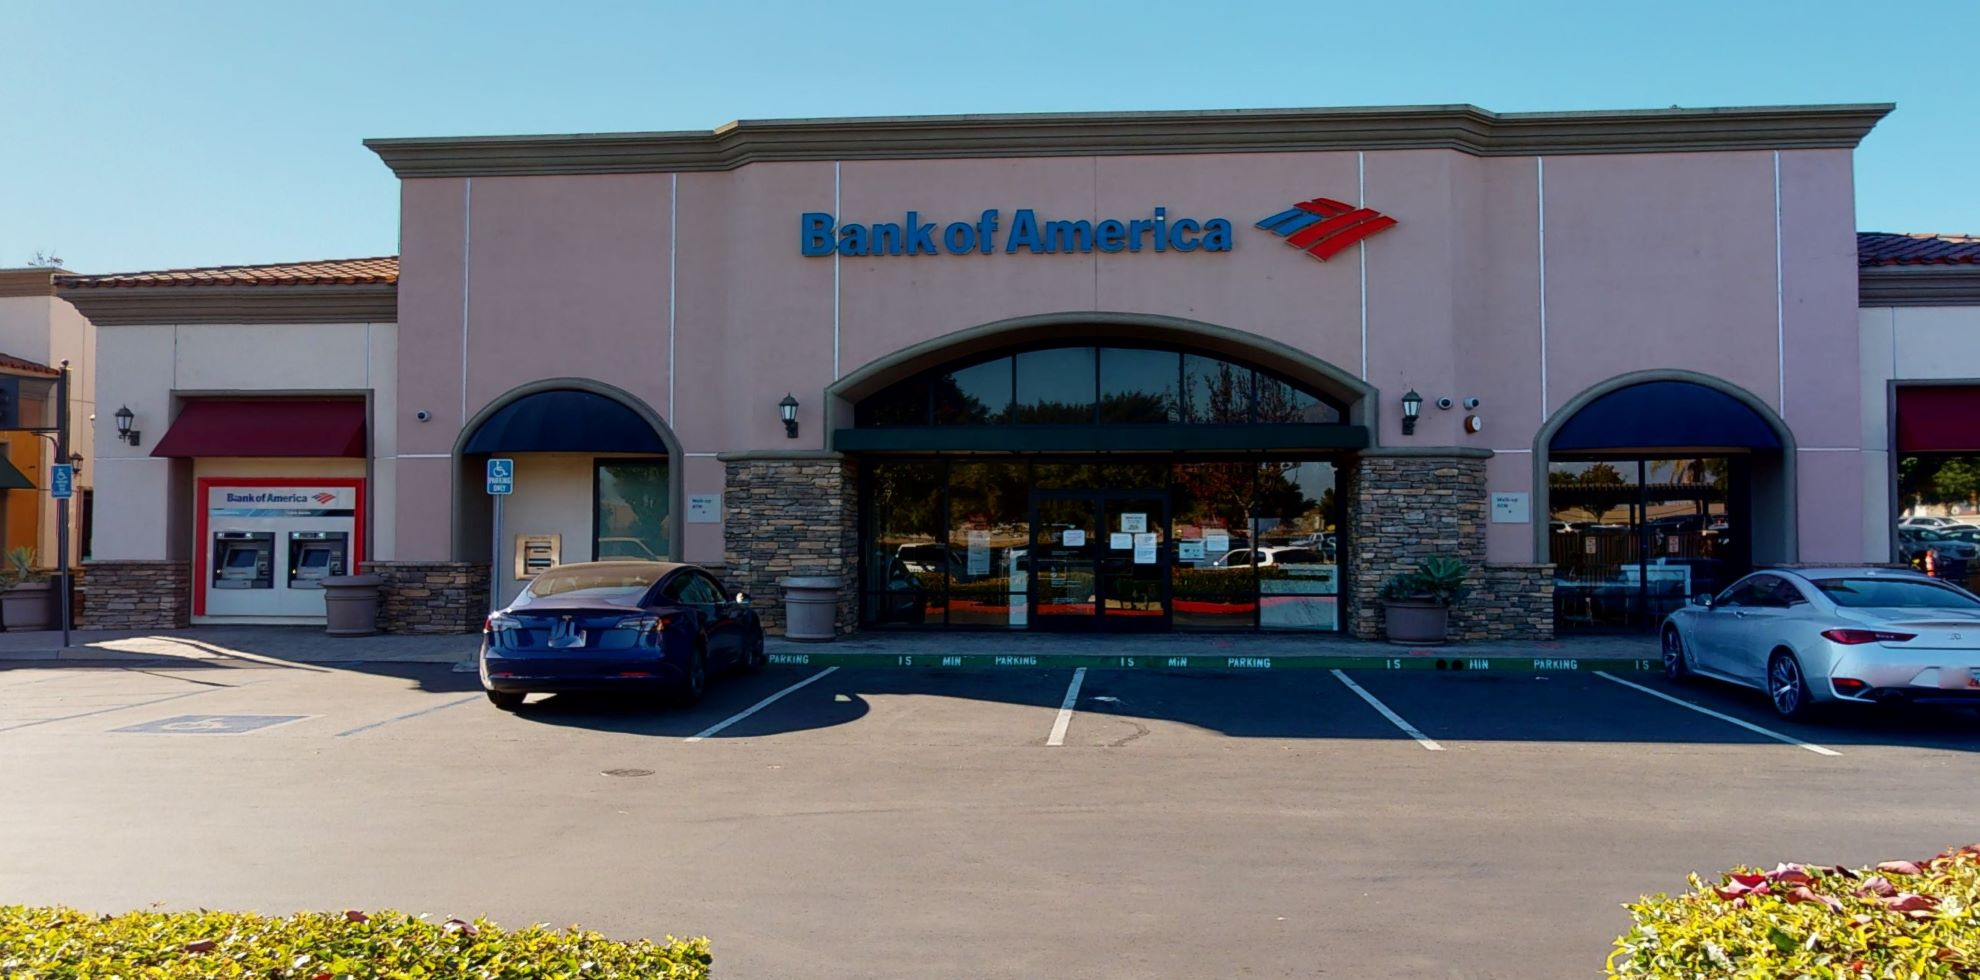 Bank of America financial center with walk-up ATM | 3650 Grand Ave, Chino Hills, CA 91709